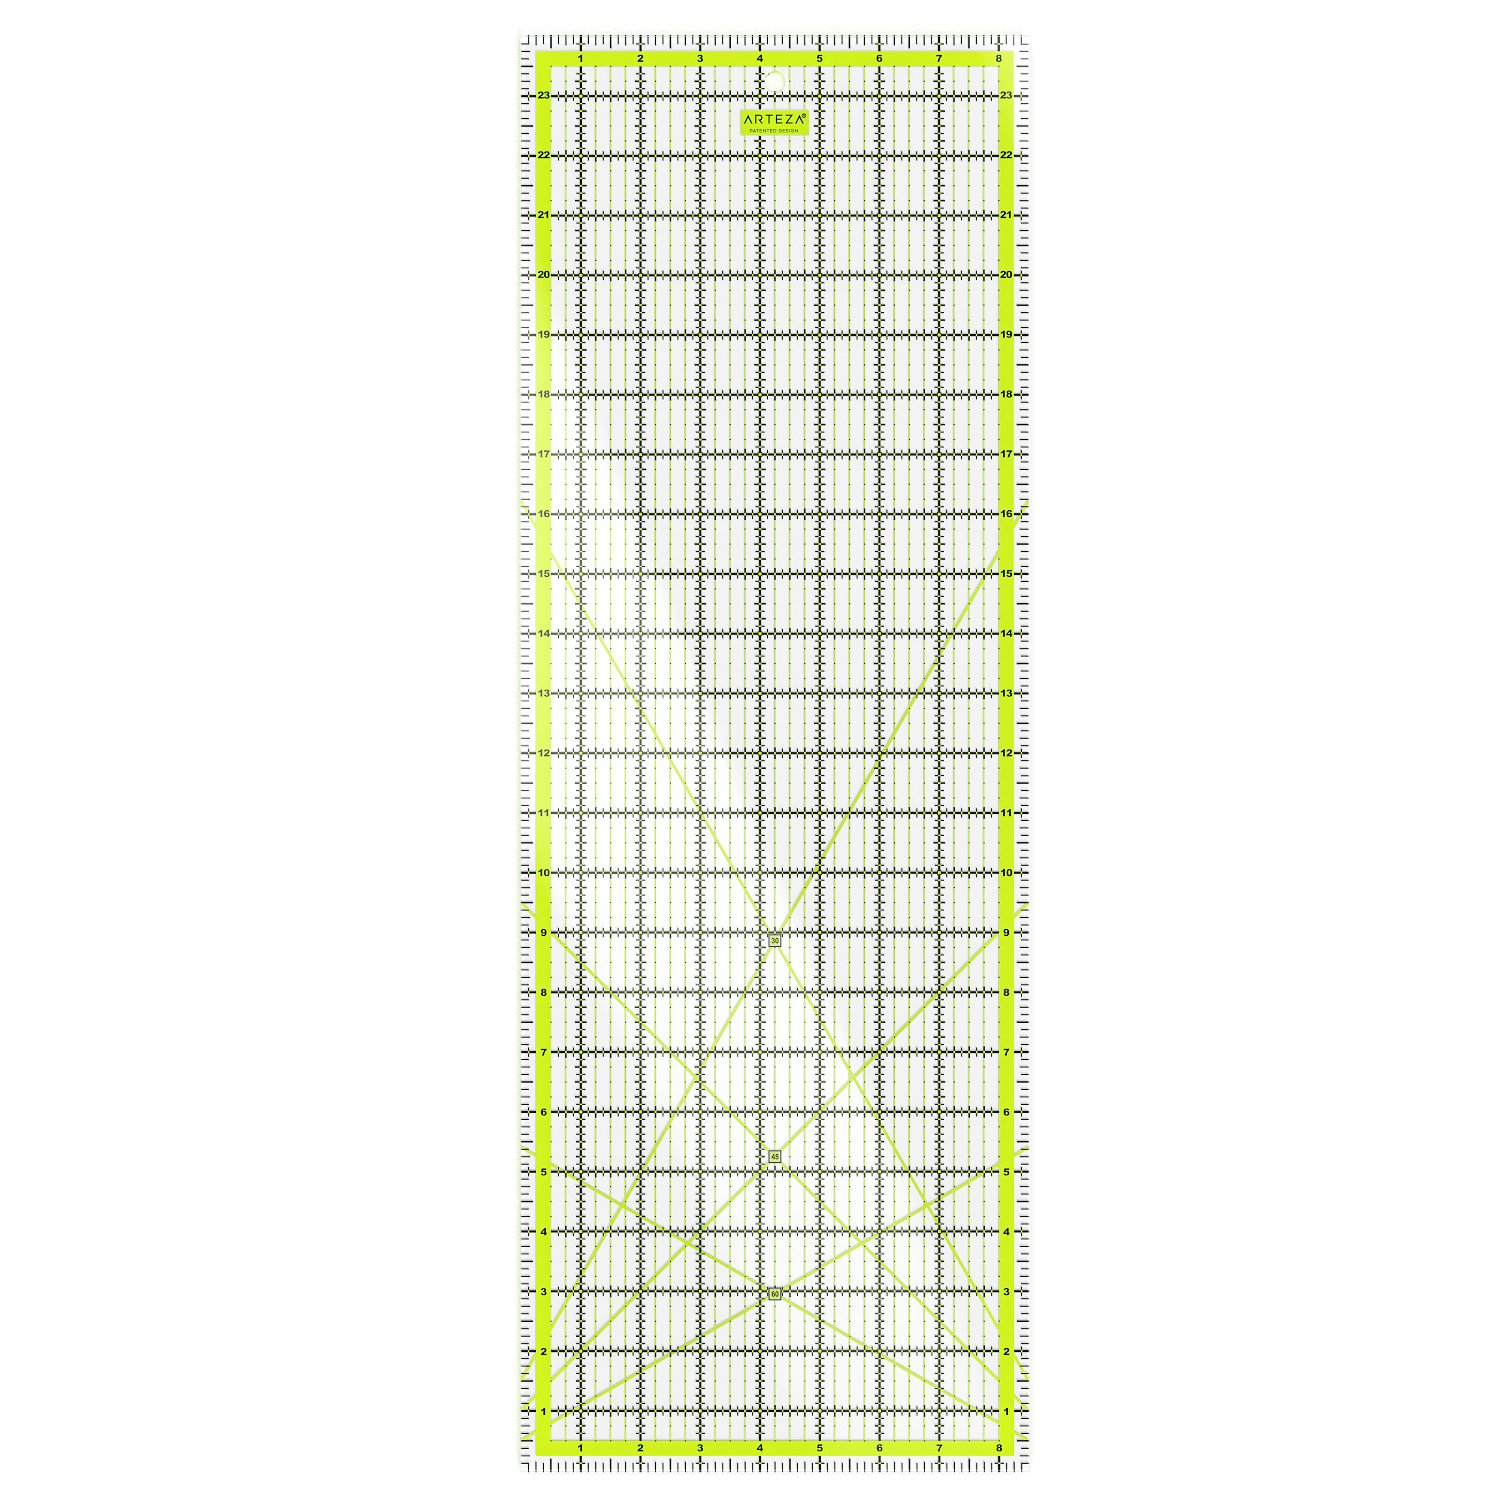 ARTEZA Quilting Ruler, Laser Cut Acrylic Quilters' Ruler with Patented Double Colored Grid Lines for Easy Precision Cutting, 8.5 Wide x 24 Long for Quilting, Sewing & Crafts, Black & Lime Green ARTZ-8134